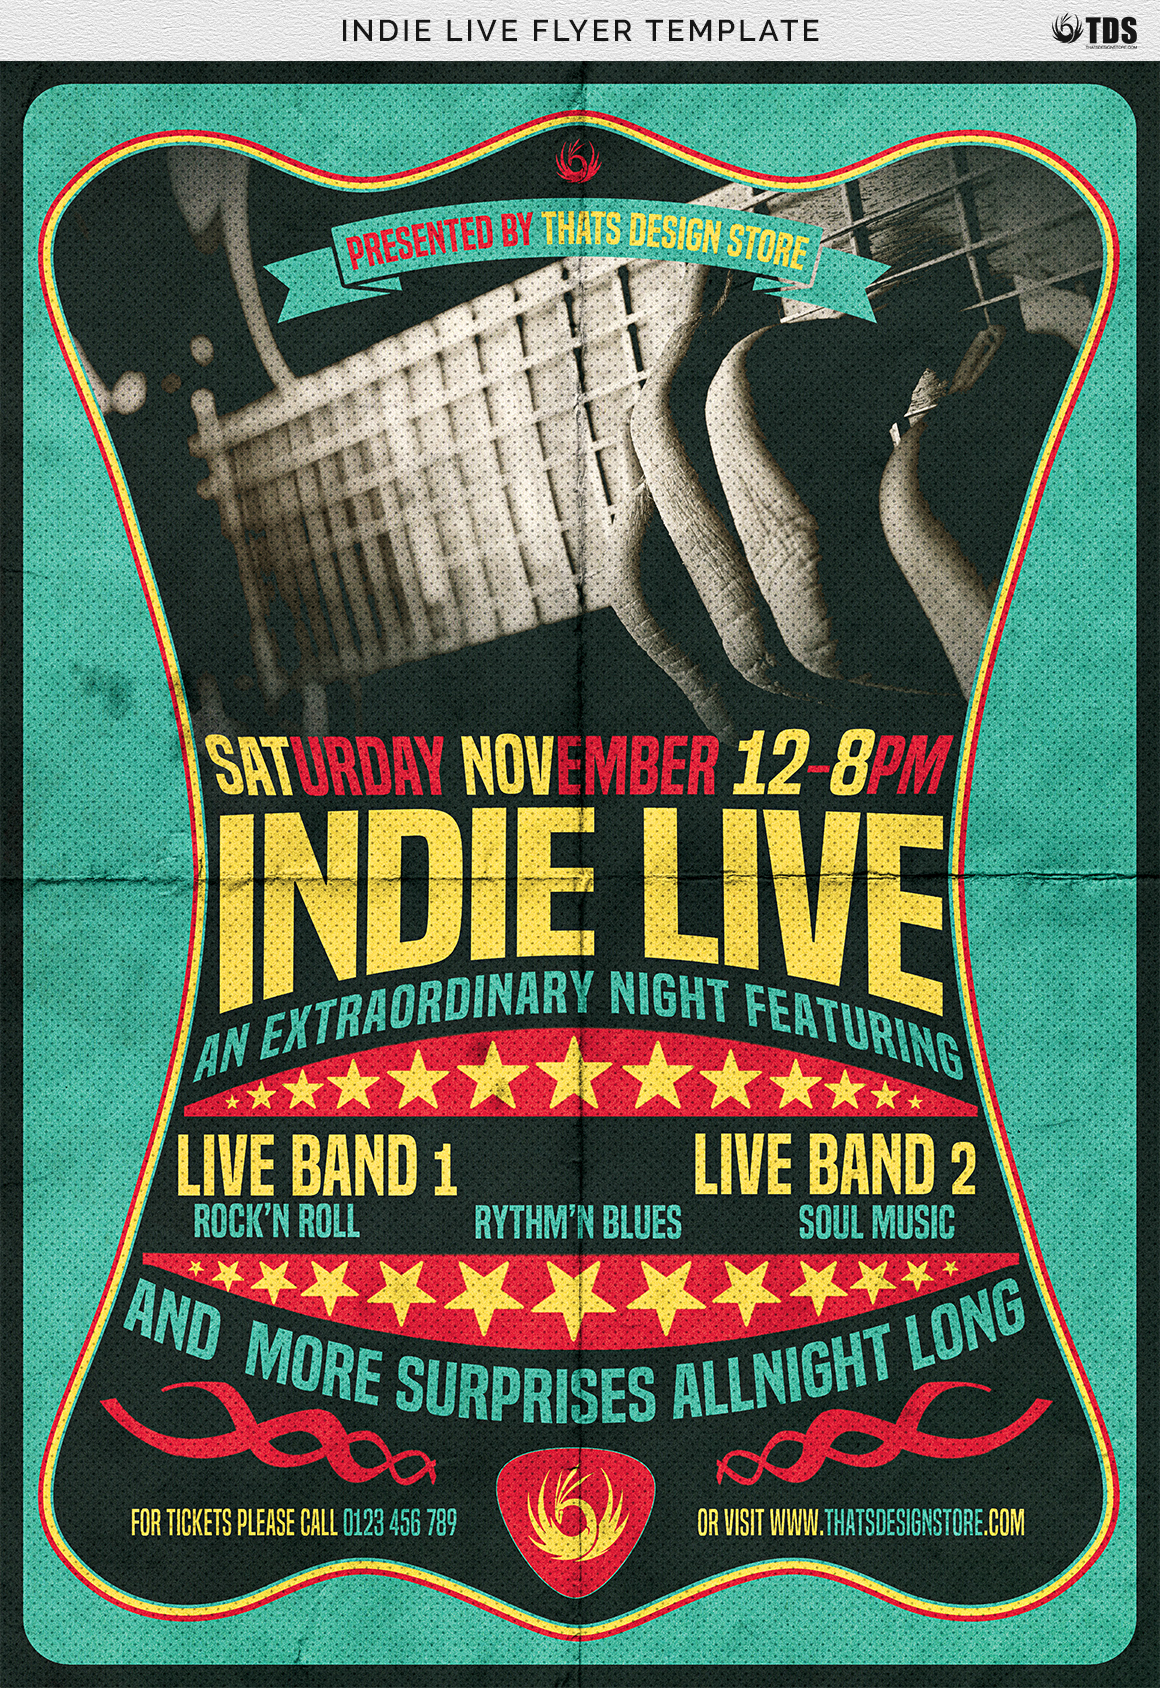 Indie Live Flyer Template example image 7